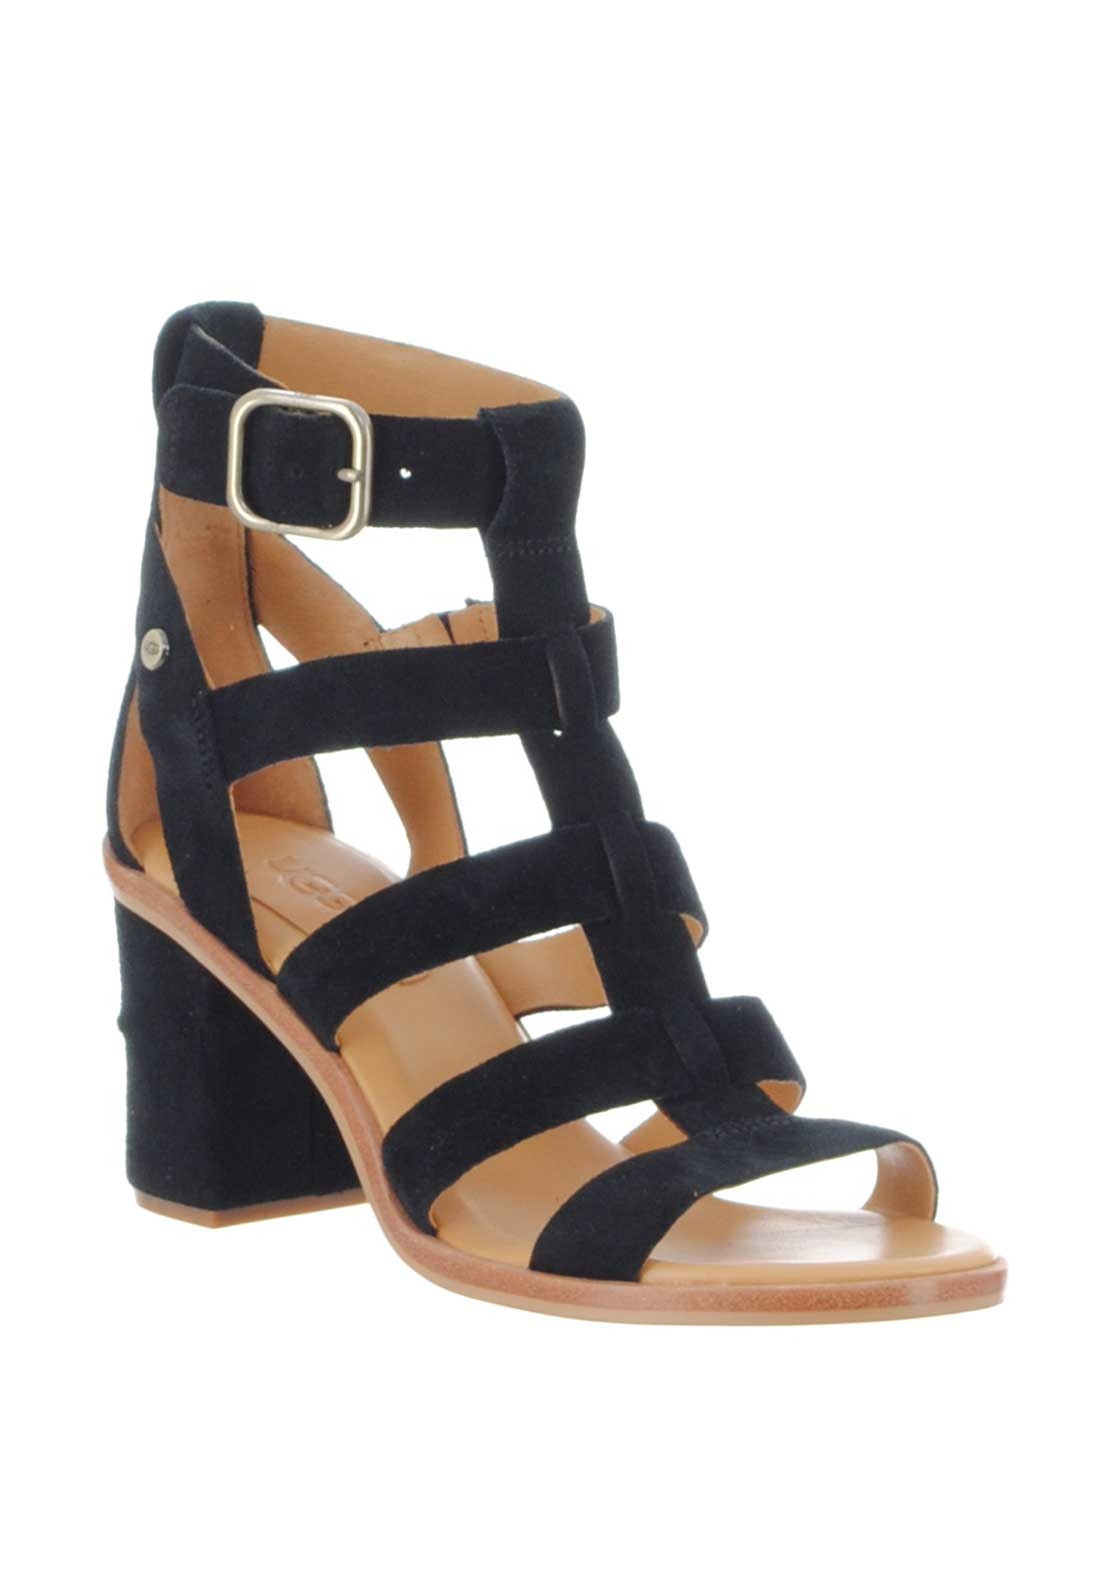 17b78b4114b UGG Womens Macayla Suede Gladiator Heeled Sandals, Black